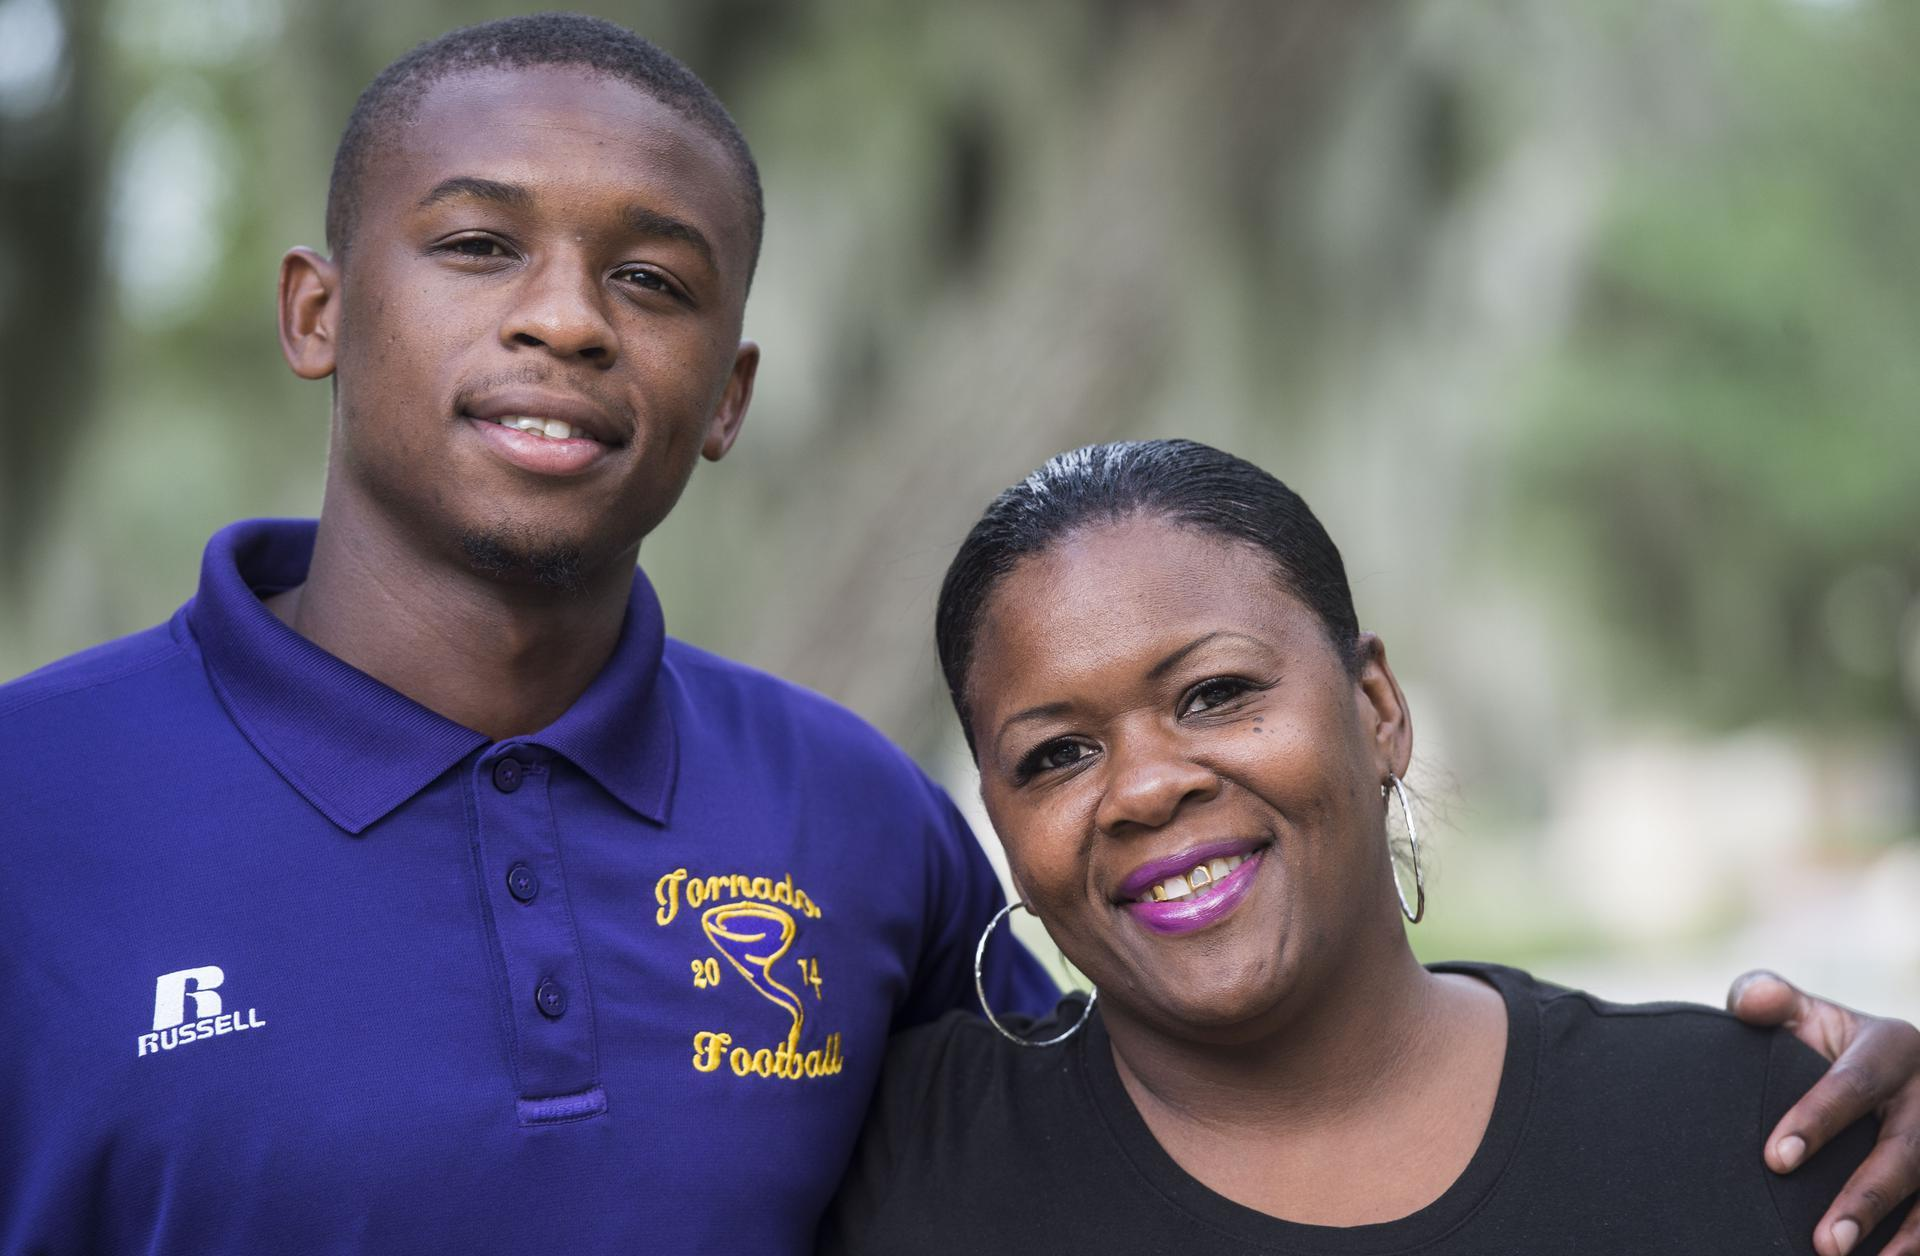 A young man and his mother, both smiling.